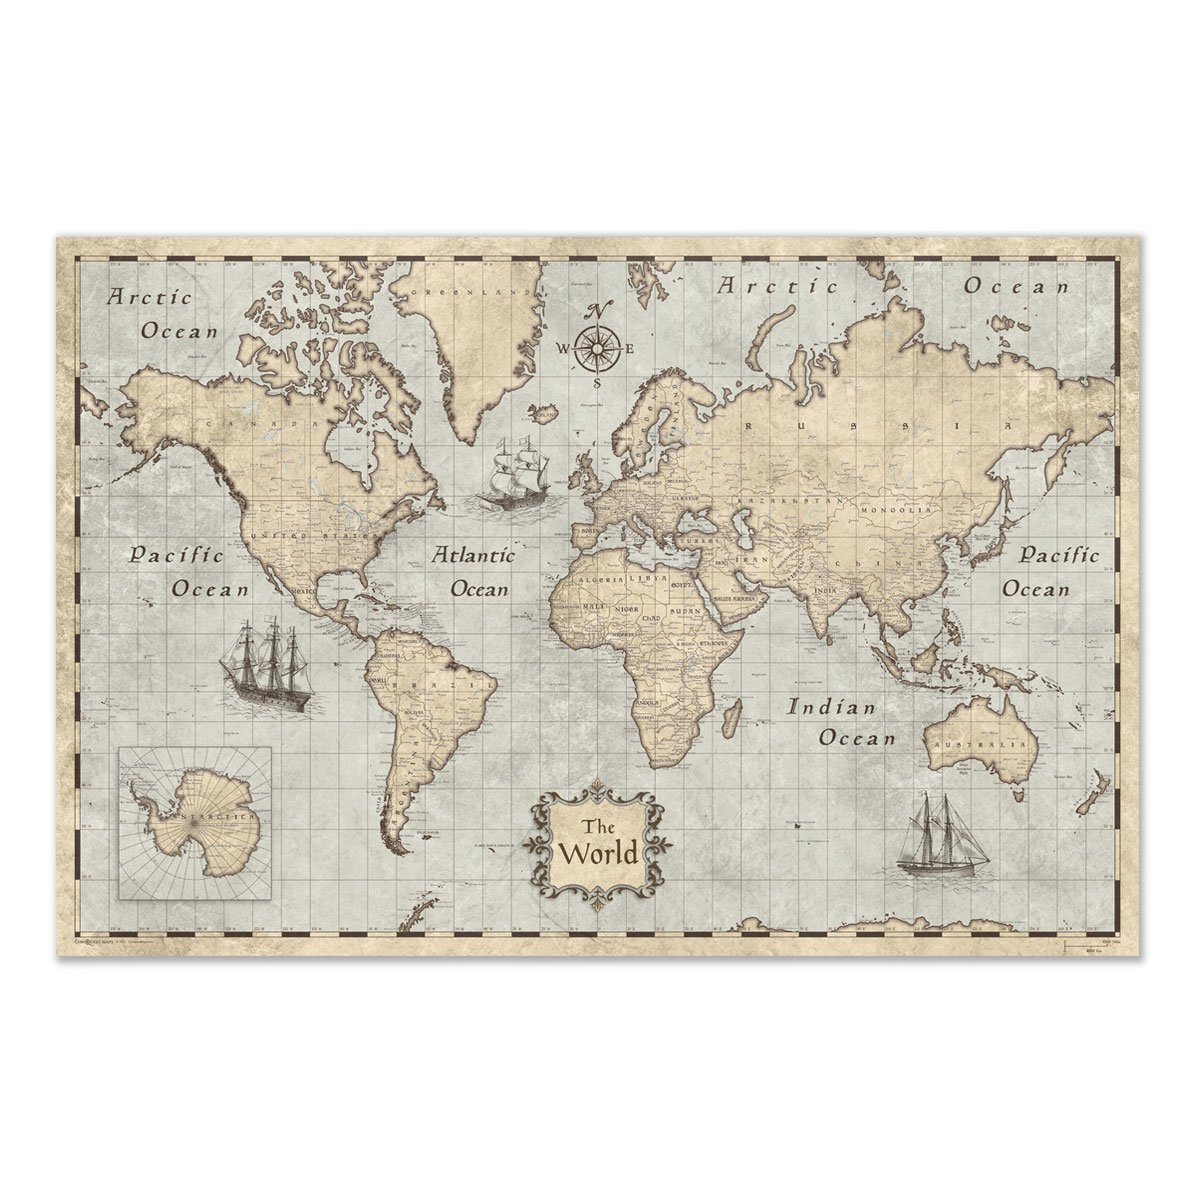 Amazon maps of the world poster by conquest maps beautiful for amazon maps of the world poster by conquest maps beautiful for home or office great gift wedding map anniversary map engagement map malvernweather Gallery